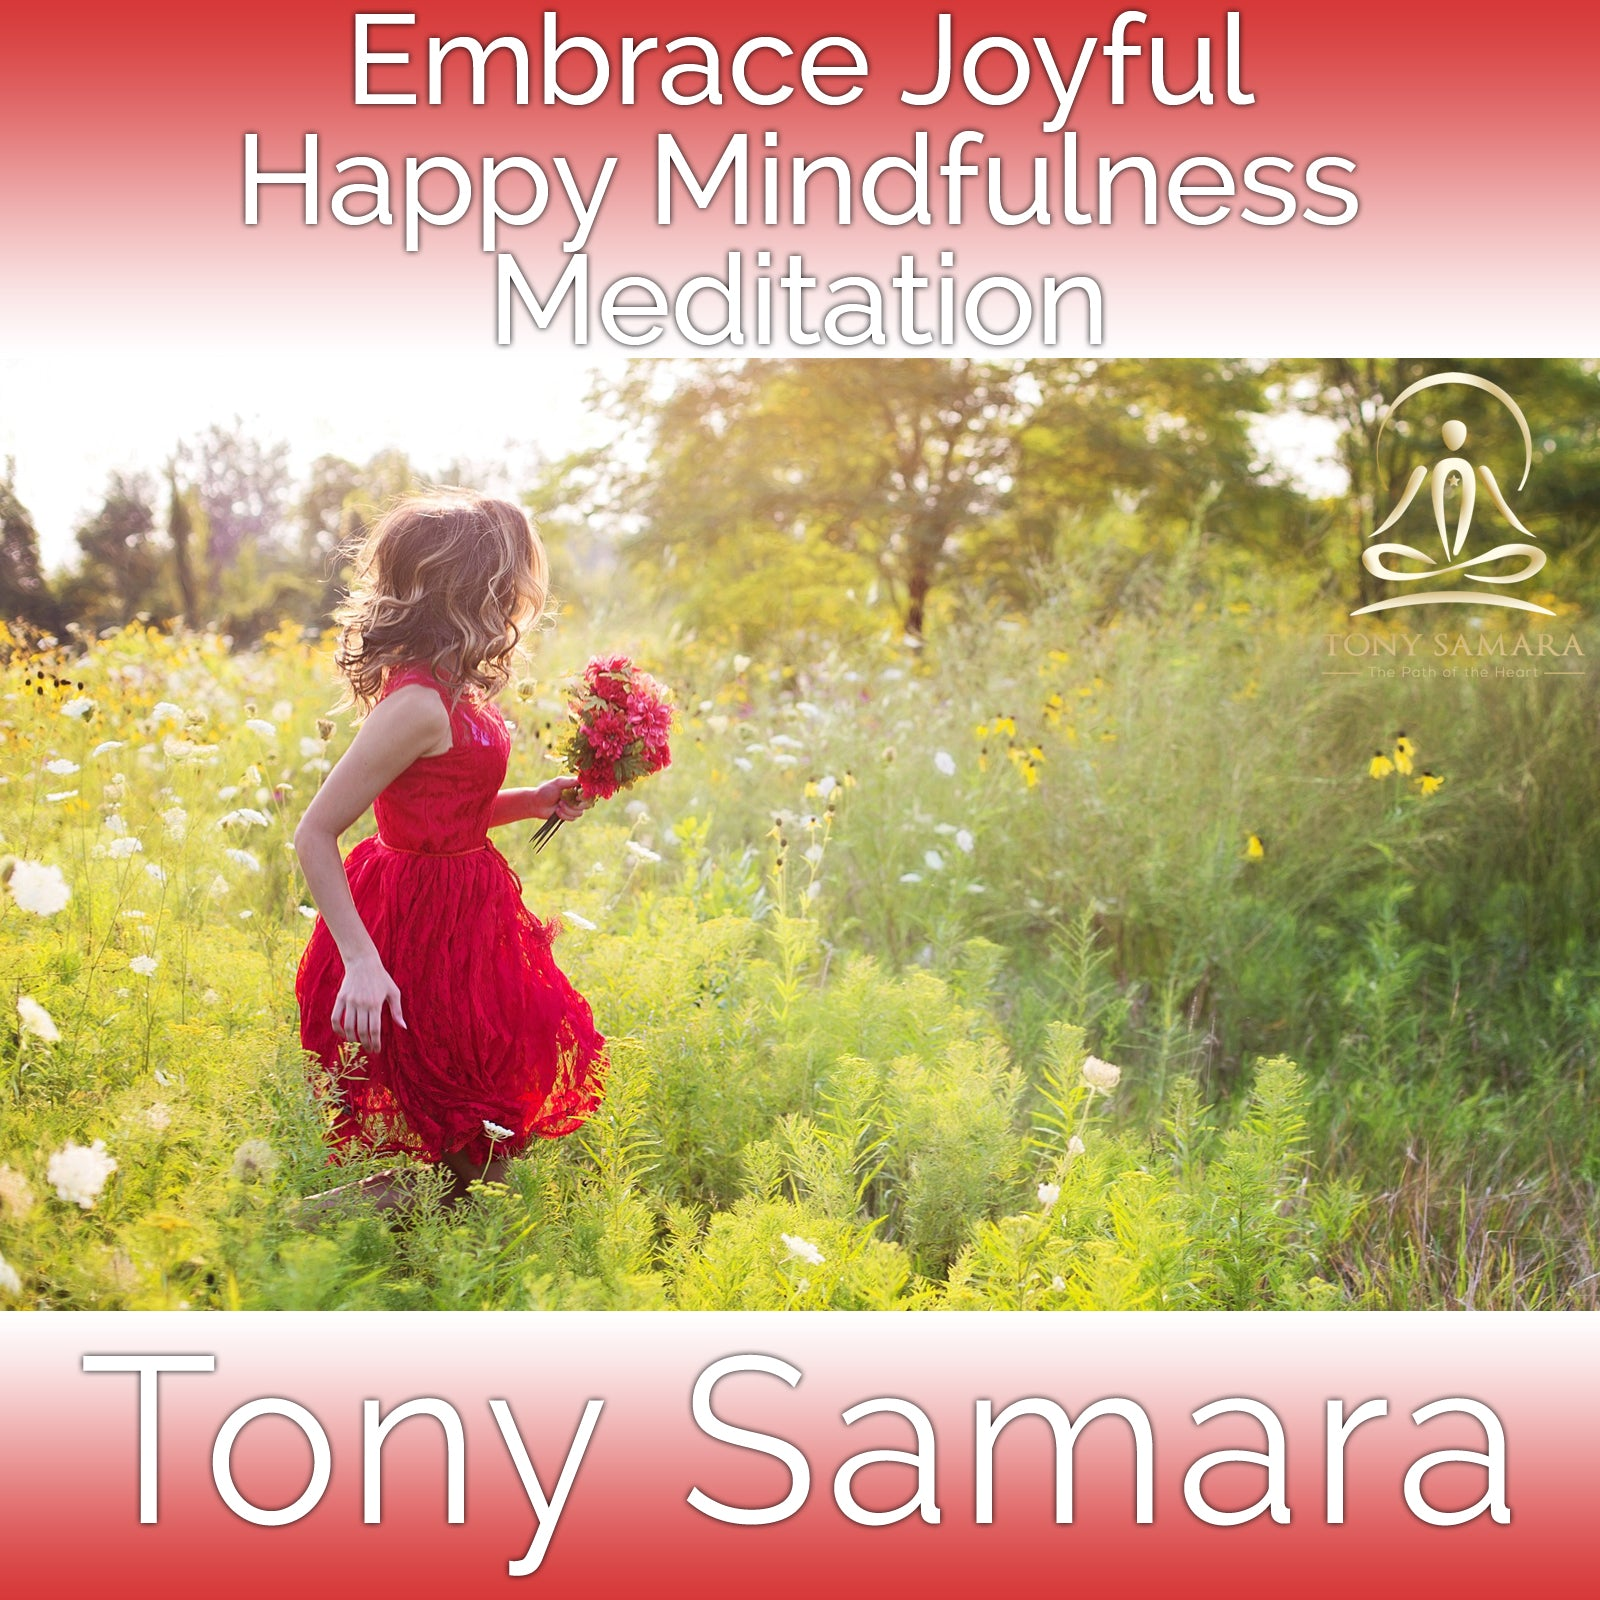 Embrace Joyful  Happy Mindfulness Meditation (MP3 Audio Download) - Tony Samara Meditation